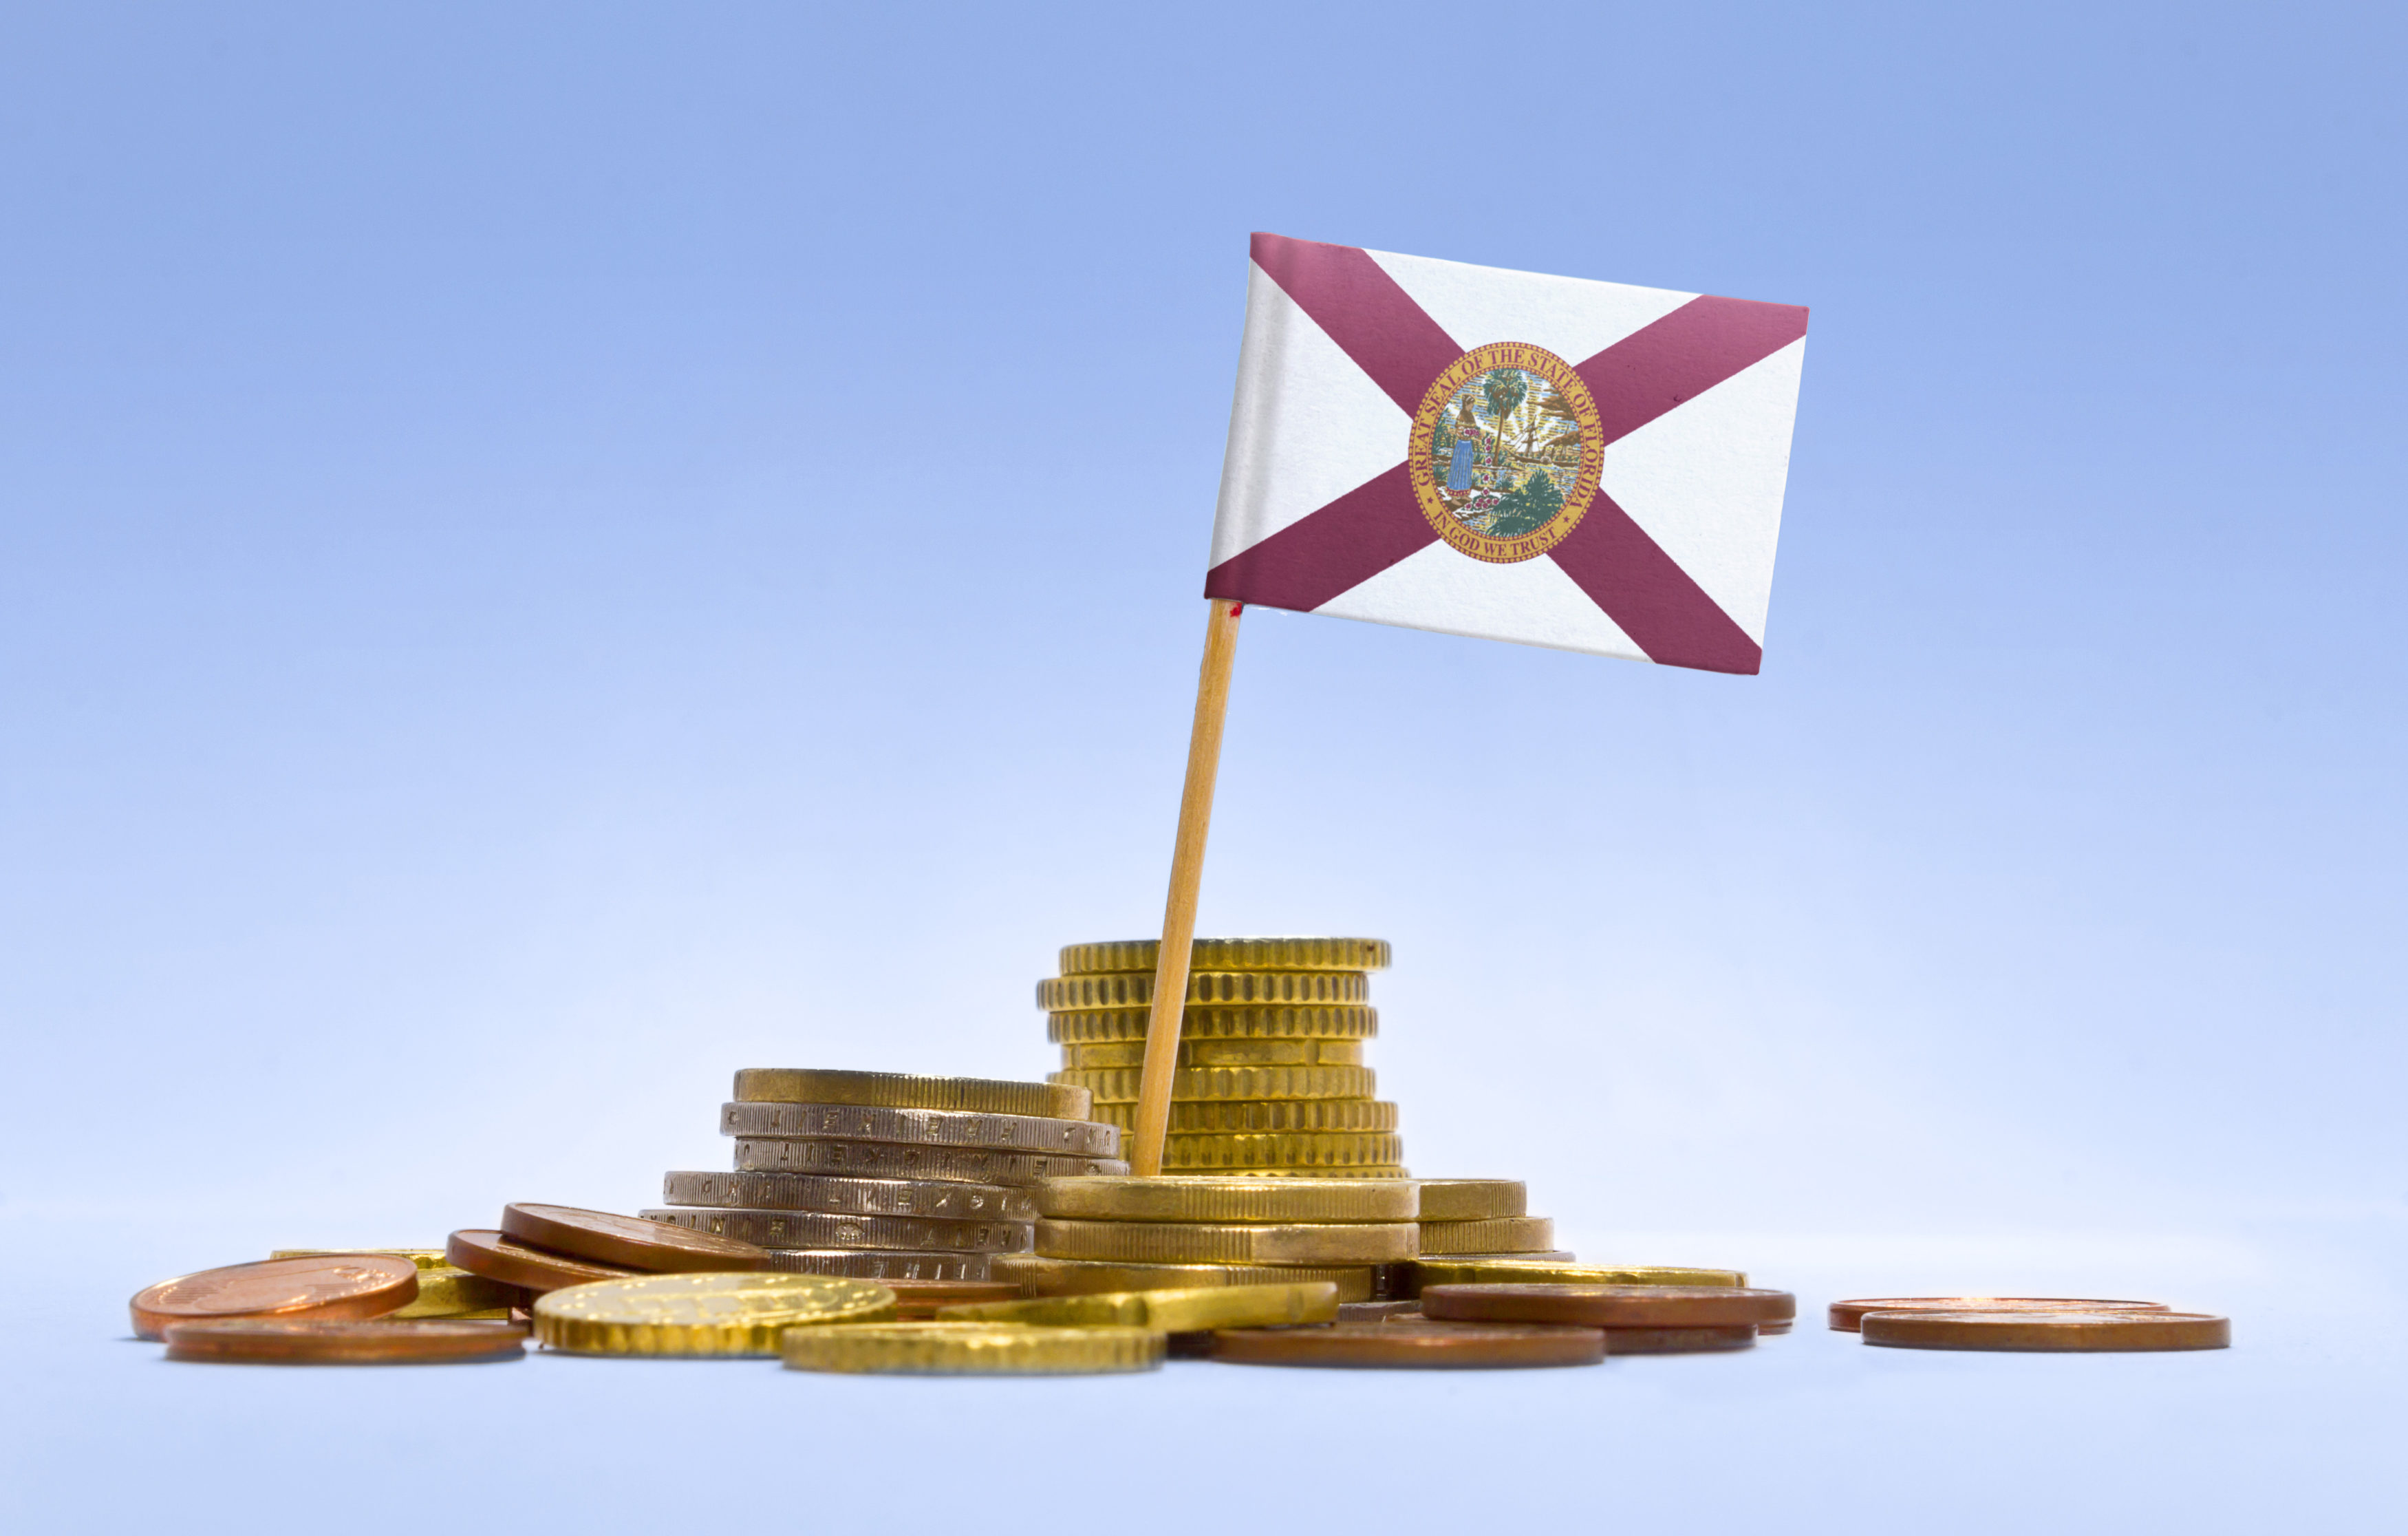 florida-flag-money-budget-3500x2232.jpeg